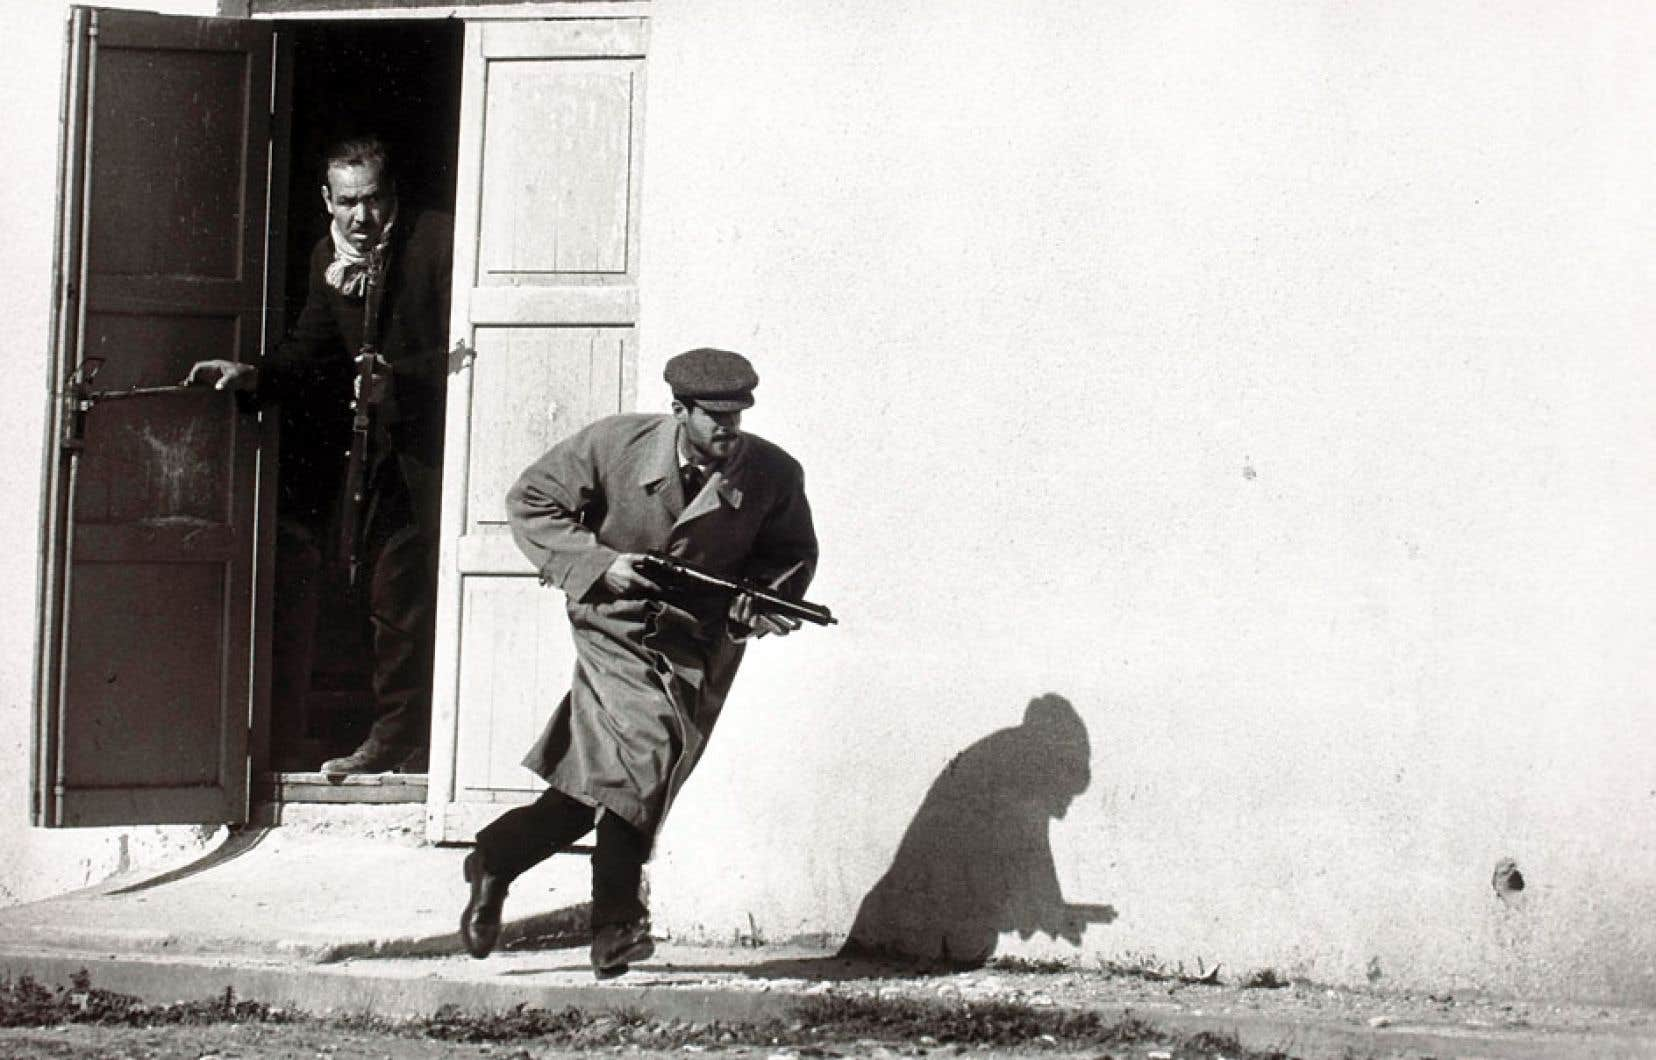 Don McCullin, Turkish defender leaving the side-entrance of a cinema, Limassol, Cyprus, 1964.